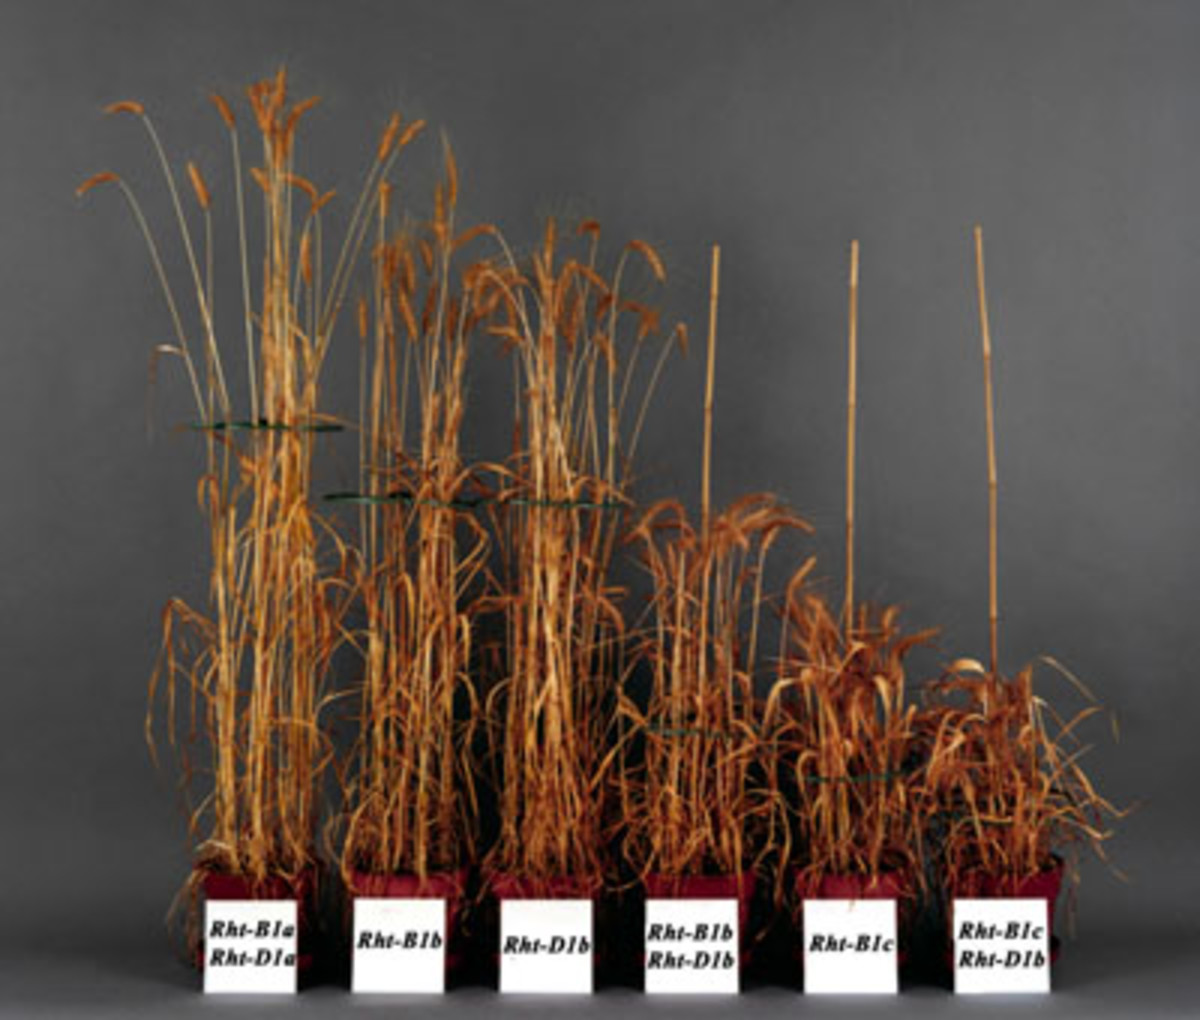 (Bearded, A. (2010), 'The Effects of Different Rht Alleles on Plant Height in Wheat', Plant Physiology (Fifth Edition), Chapter 20.3